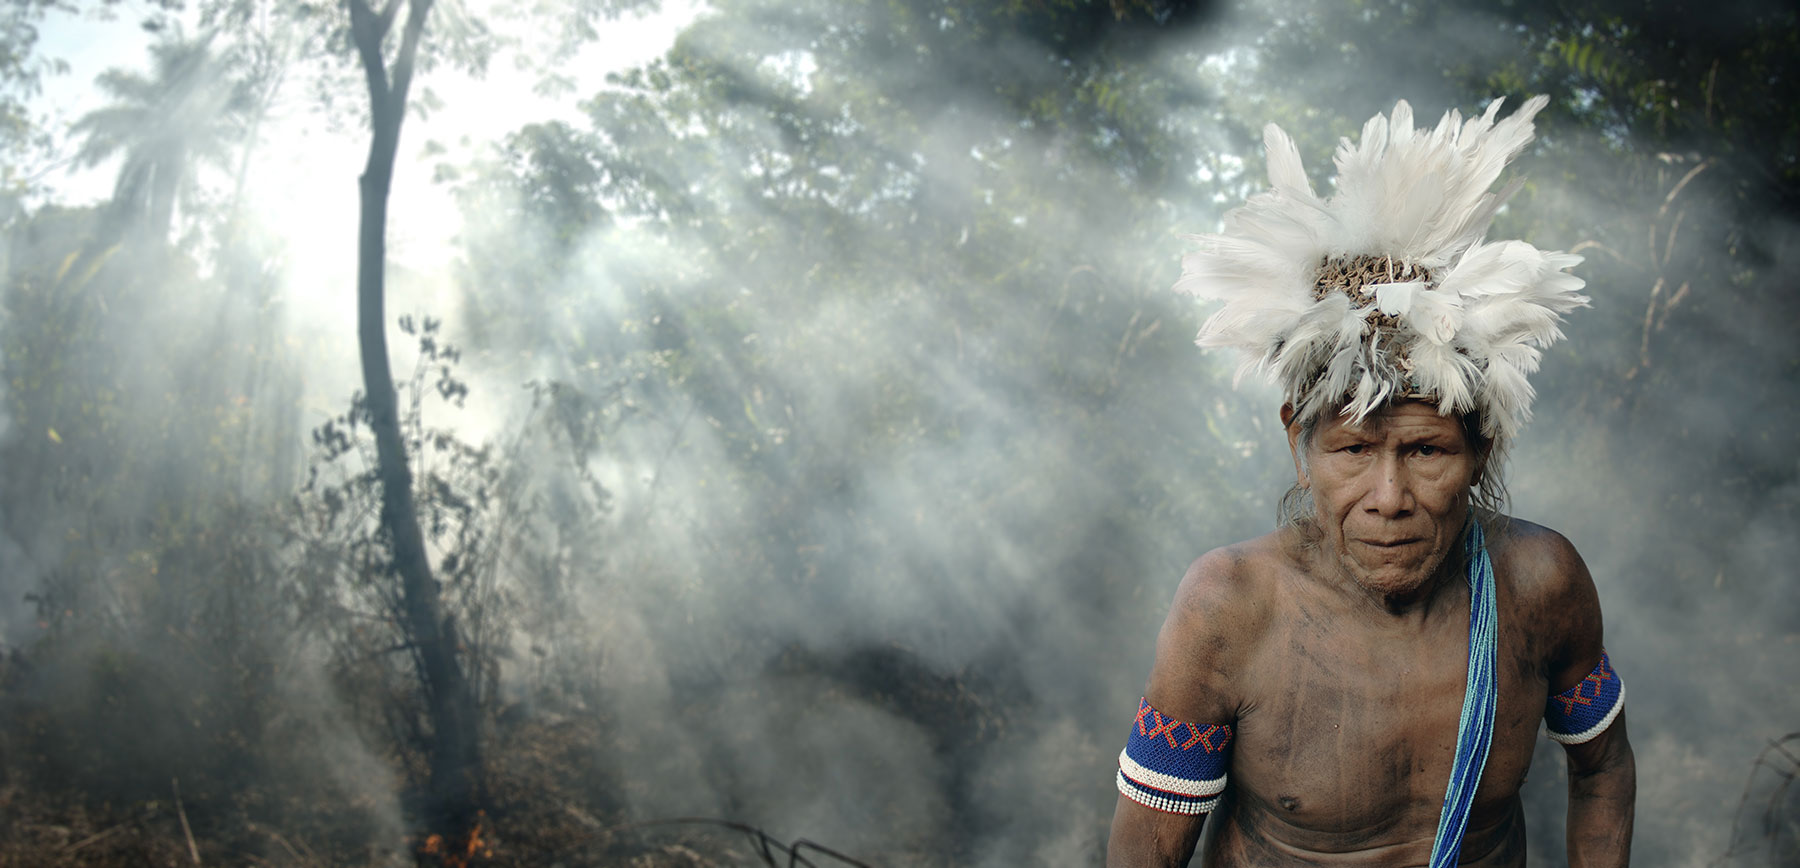 indigenous man in smokey forest